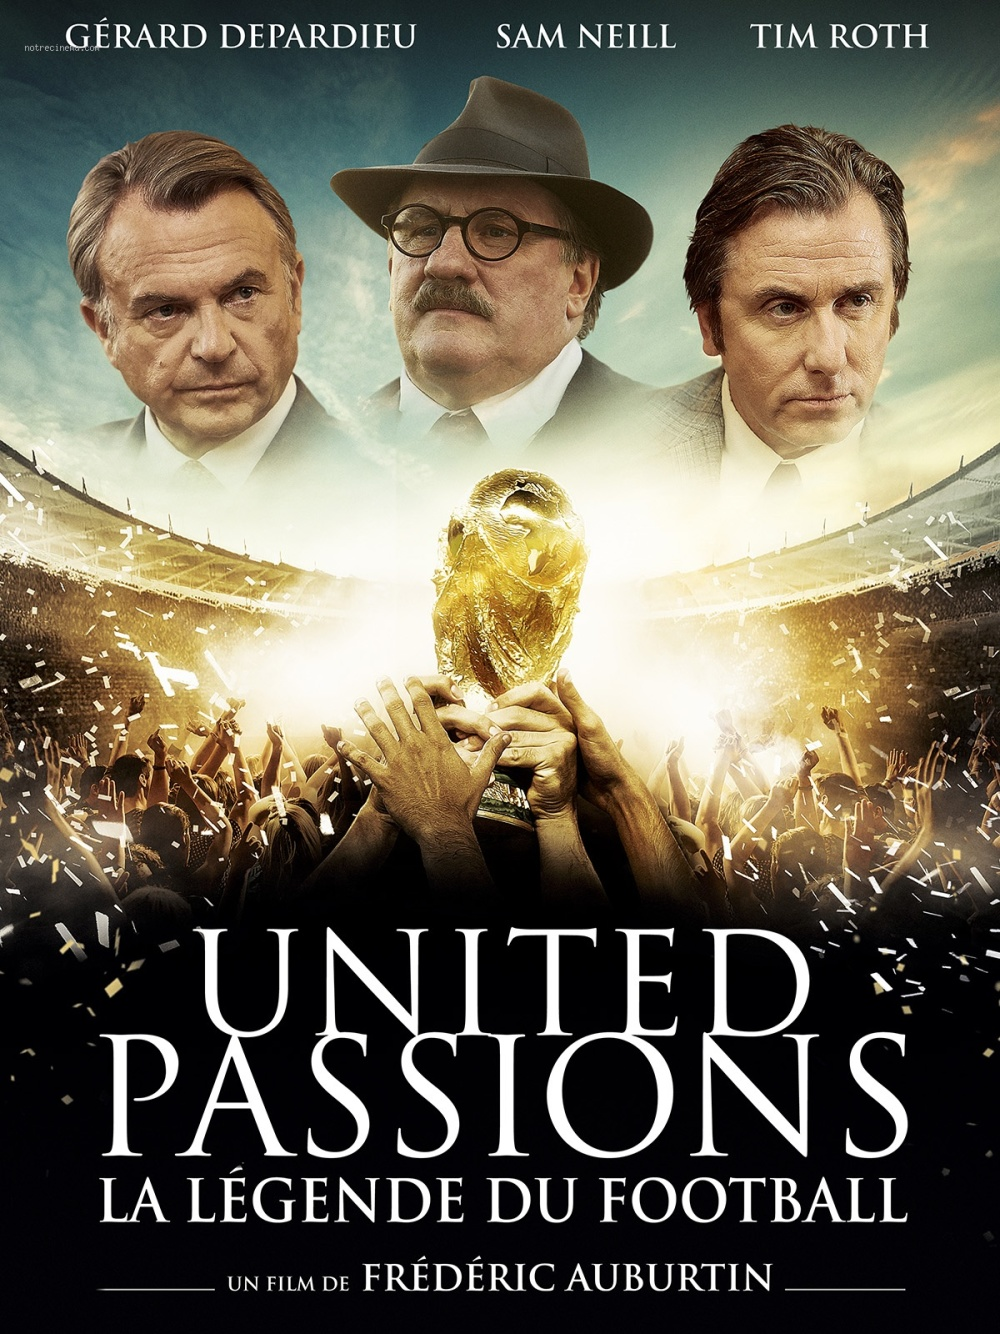 FIFA-film 'United Passions' slaat enorme flater